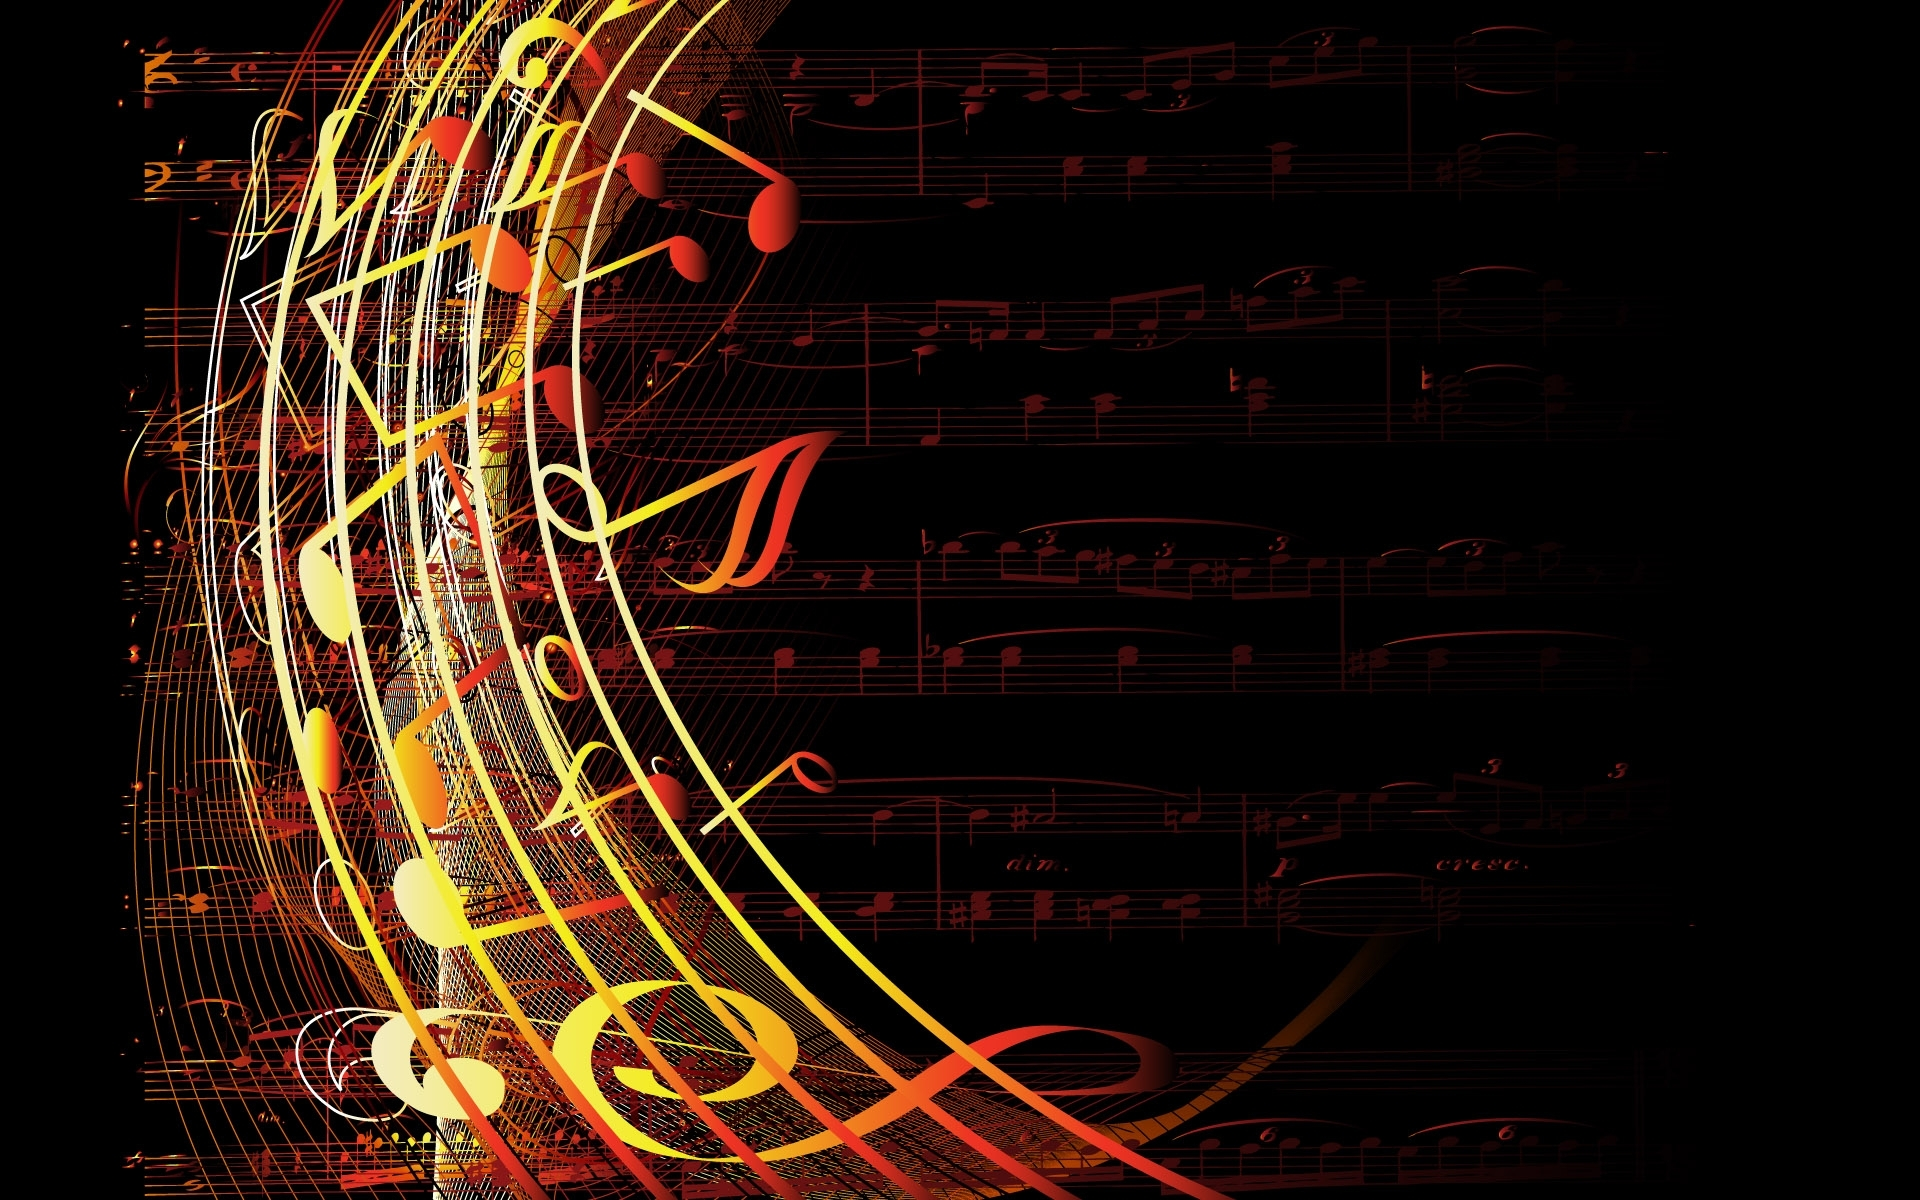 Popular Wallpaper Music Computer - musical-notes-wallpapers-pc-musical-notes-nice-wallpapers-d  Best Photo Reference_9010042.jpg